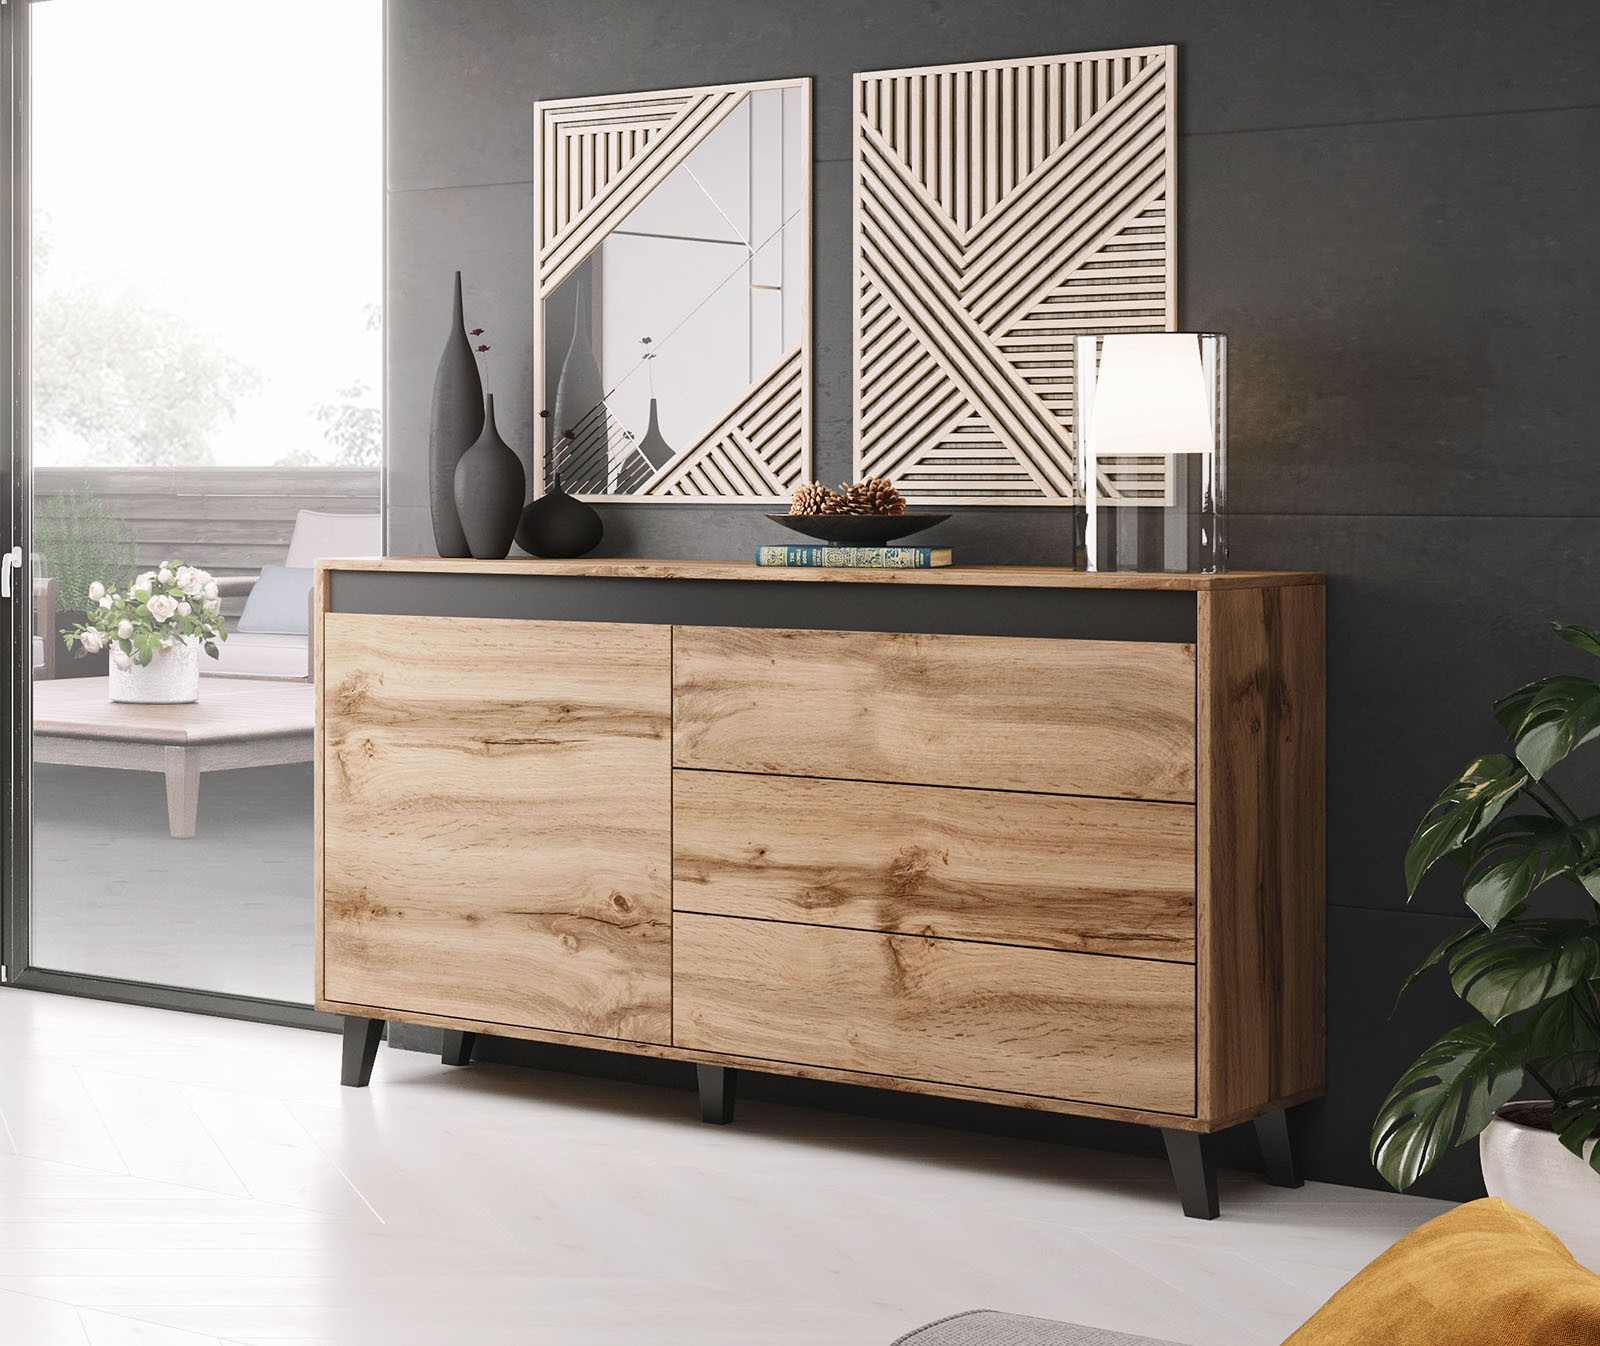 Sideboard Modern Bmf Nord Sideboard Chest Of Drawers Modern Living Room 138 Cm Wide | Ebay